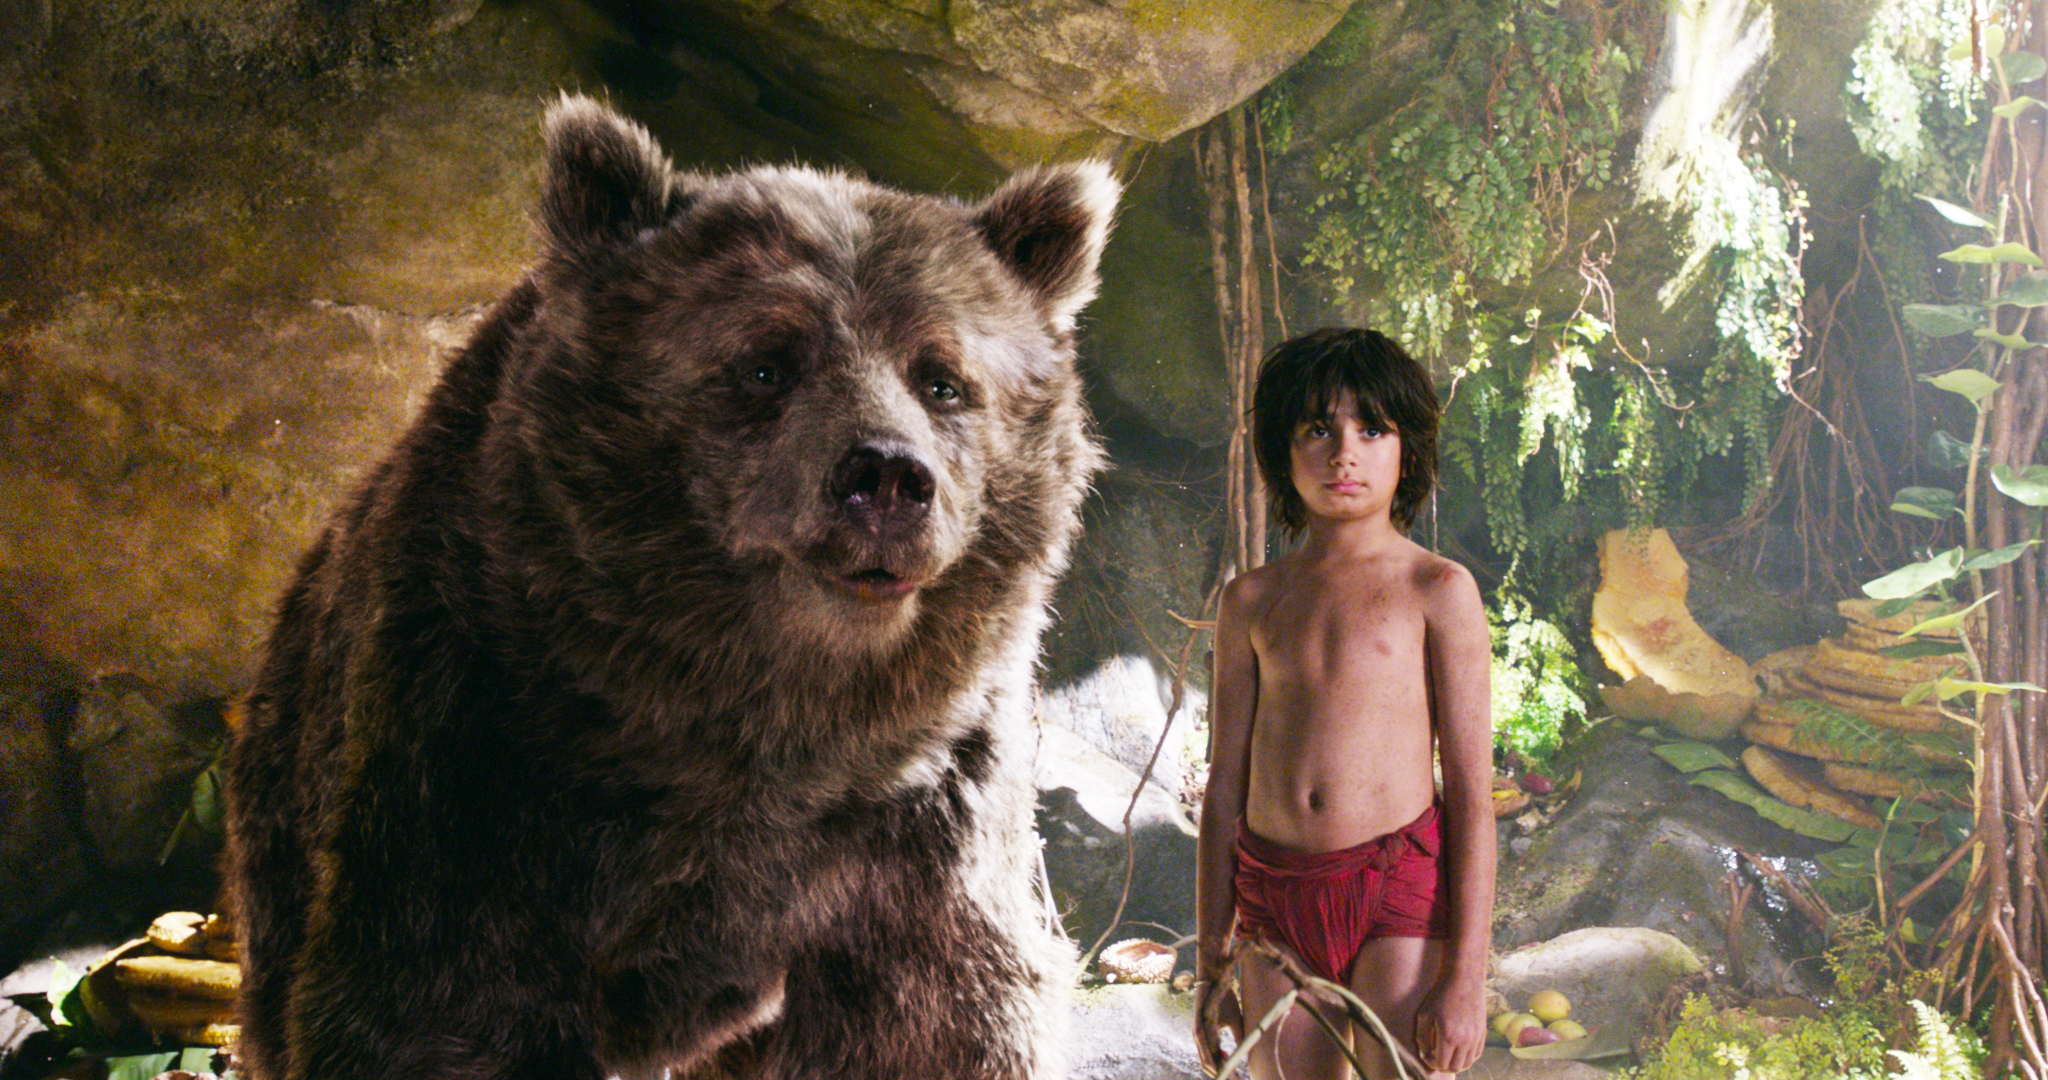 THE JUNGLE BOOK - (L-R) BALOO and MOWGLI. ©2106 Disney Enterprises, Inc. All Rights Reserved.